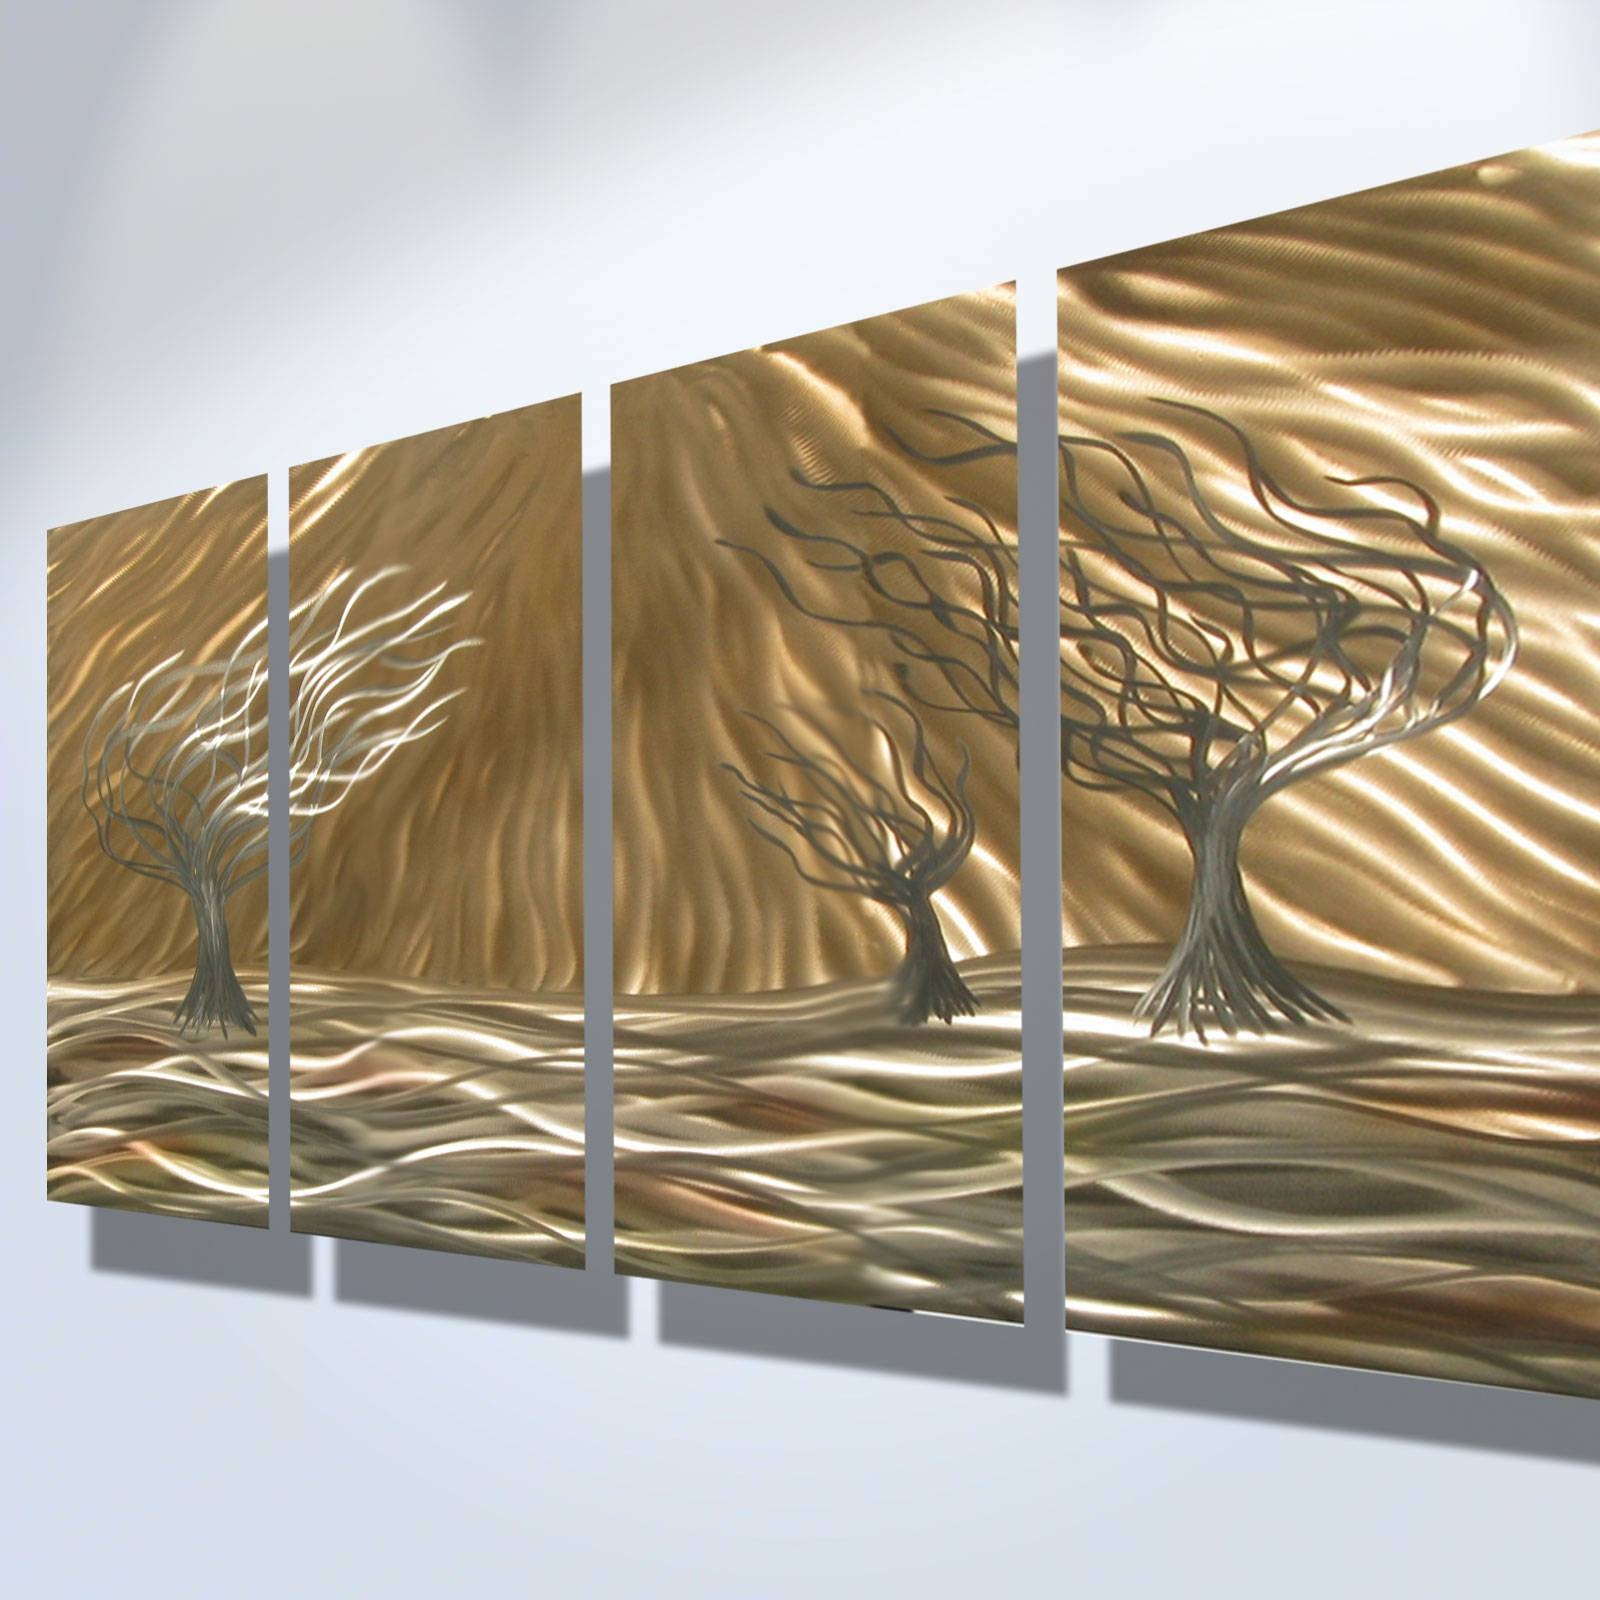 3 Trees 4 Panel – Abstract Metal Wall Art Contemporary Modern Pertaining To Best And Newest Contemporary Metal Wall Art Decor (View 3 of 20)